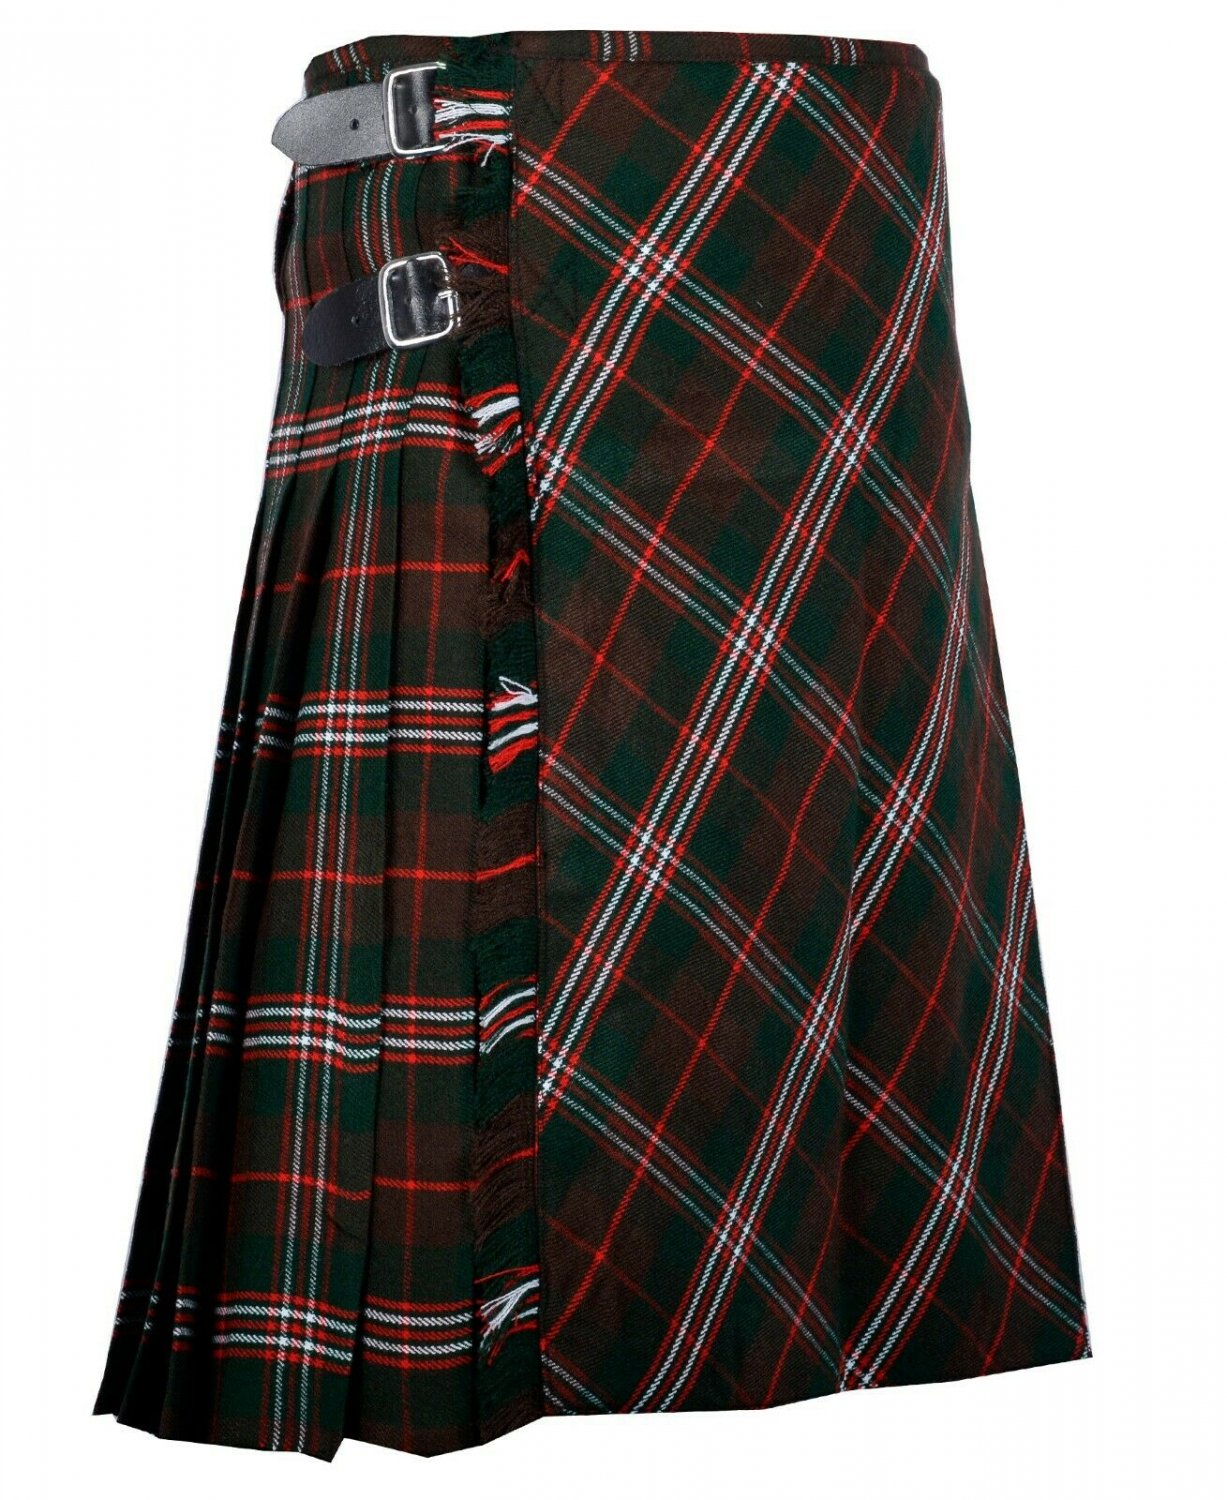 48 inches waist Bias Apron Traditional 5 Yard Scottish Kilt for Men - Scott Hunting Tartan